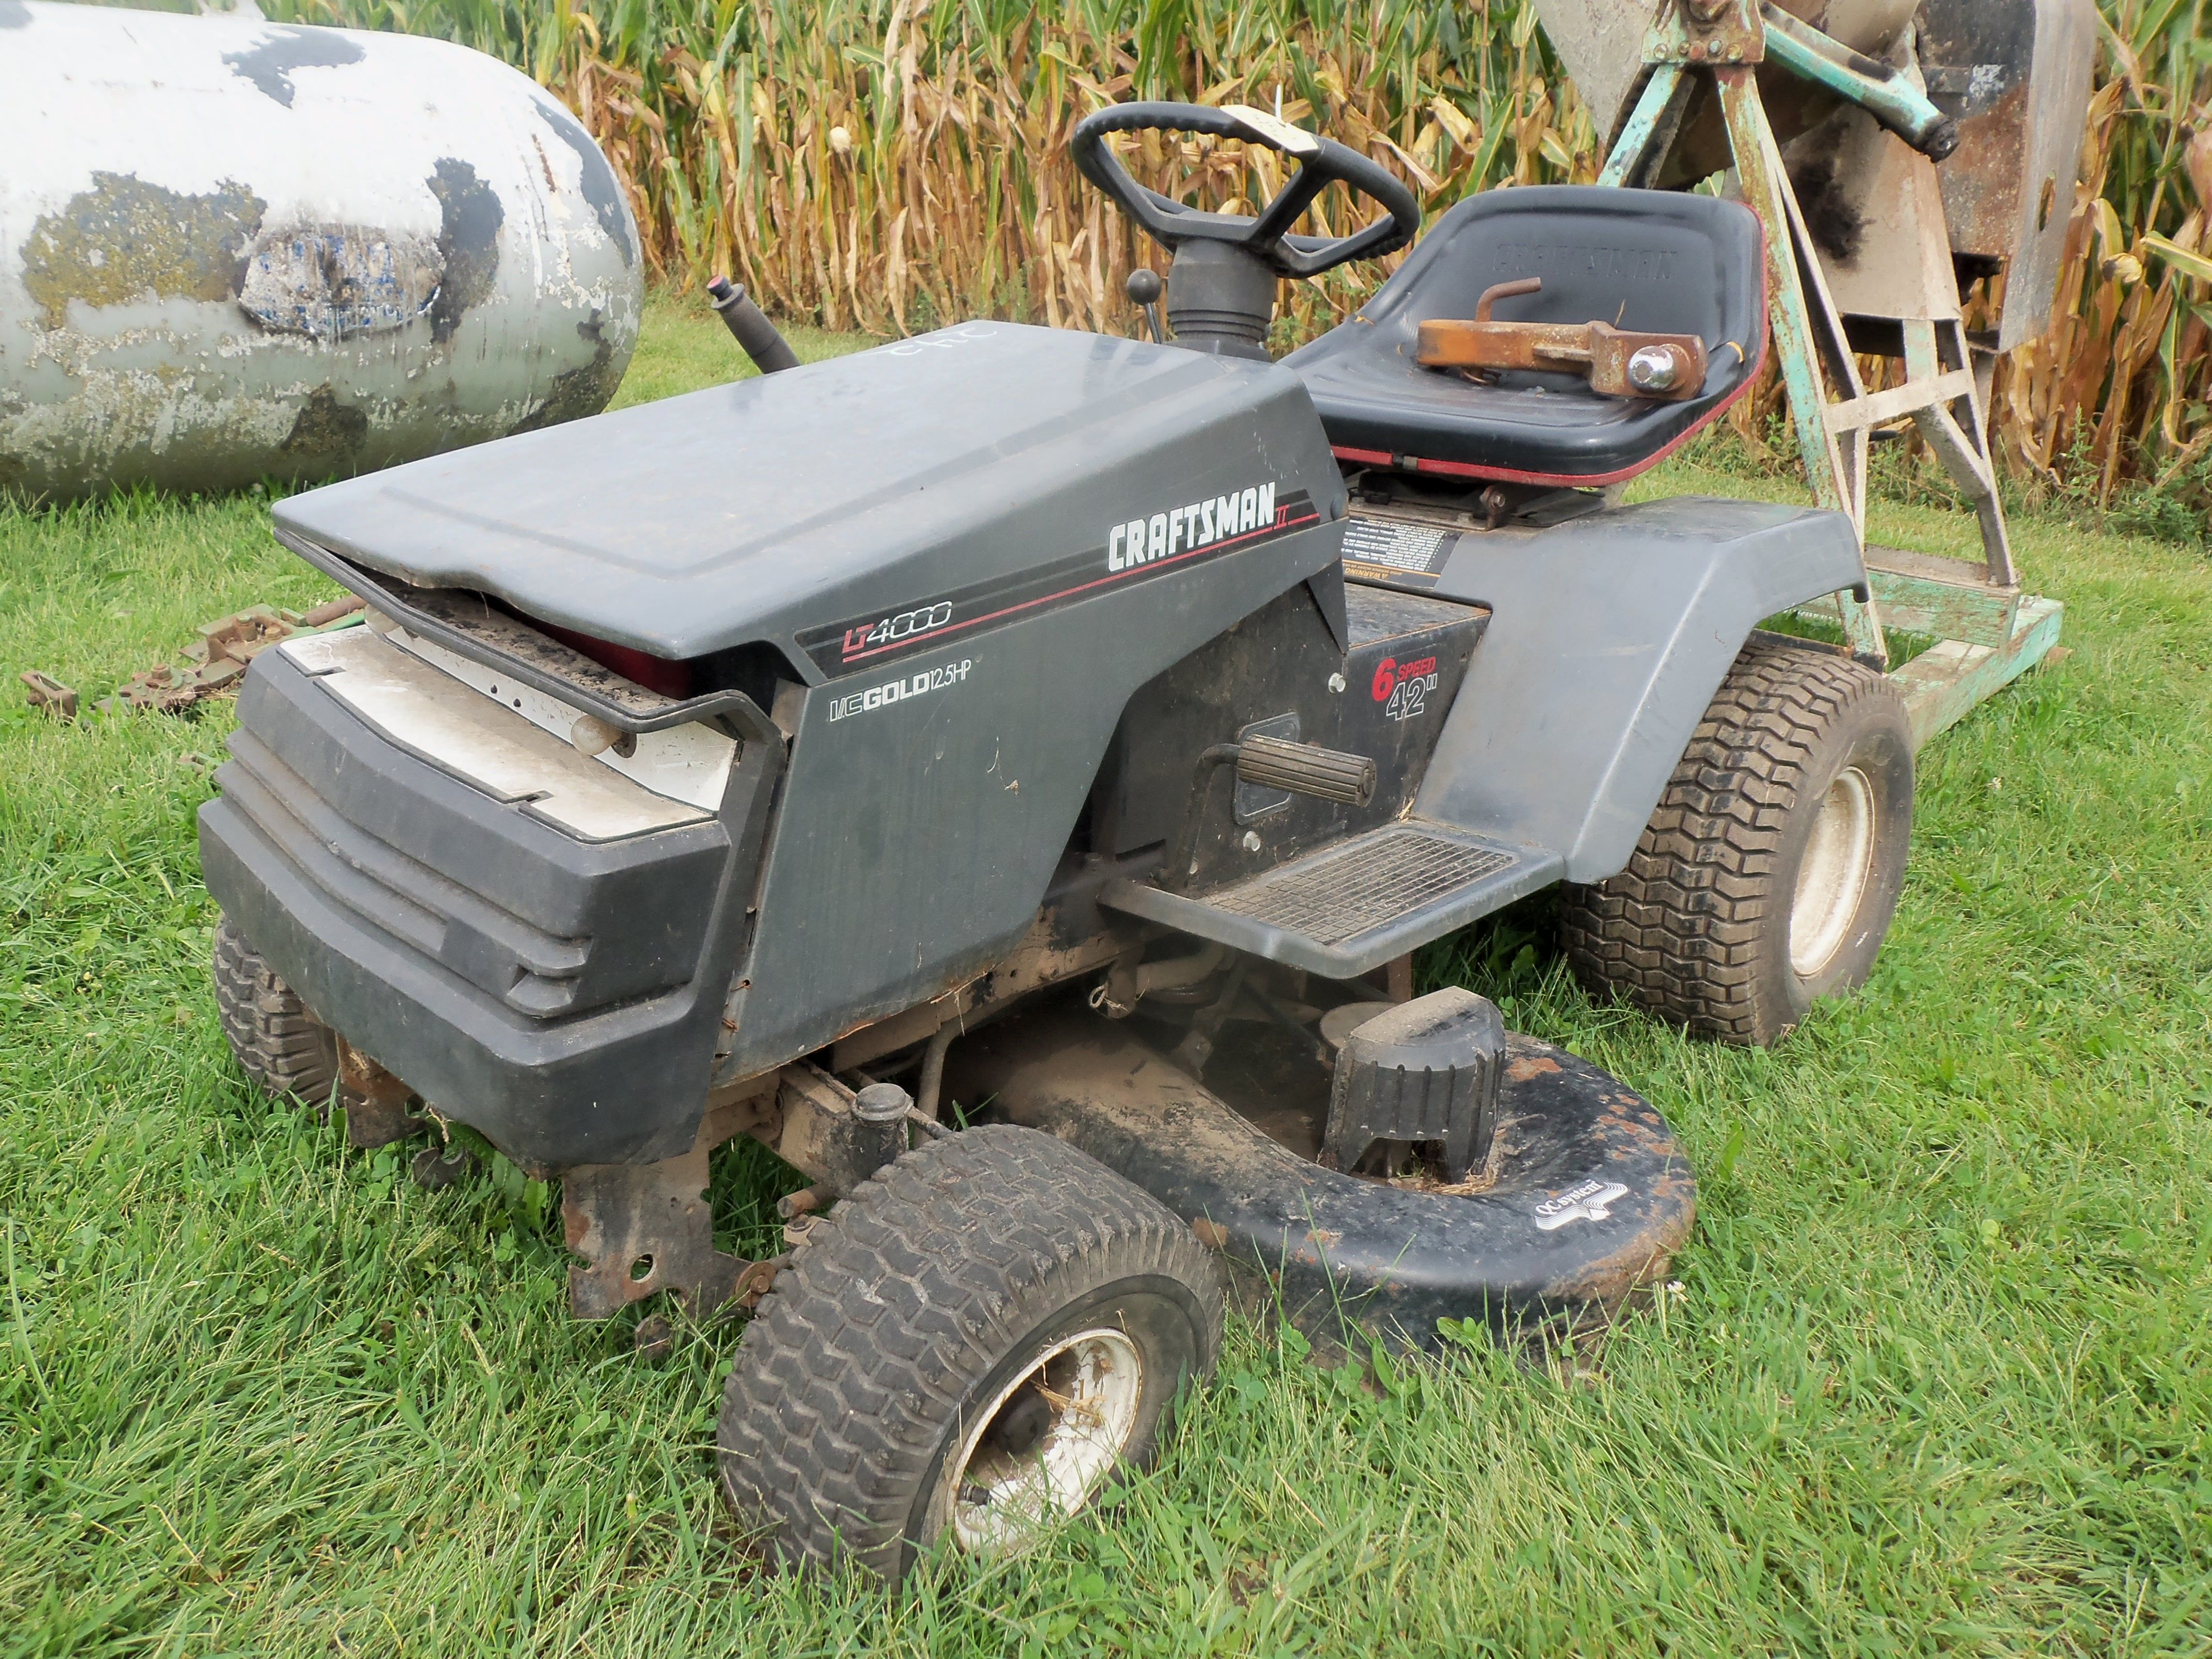 329d2b653c7c73060421b64b86d35aa5 craftsman lt4000 12 5hp lawn tractor tractors pinterest tractor craftsman lt4000 wiring diagram at crackthecode.co